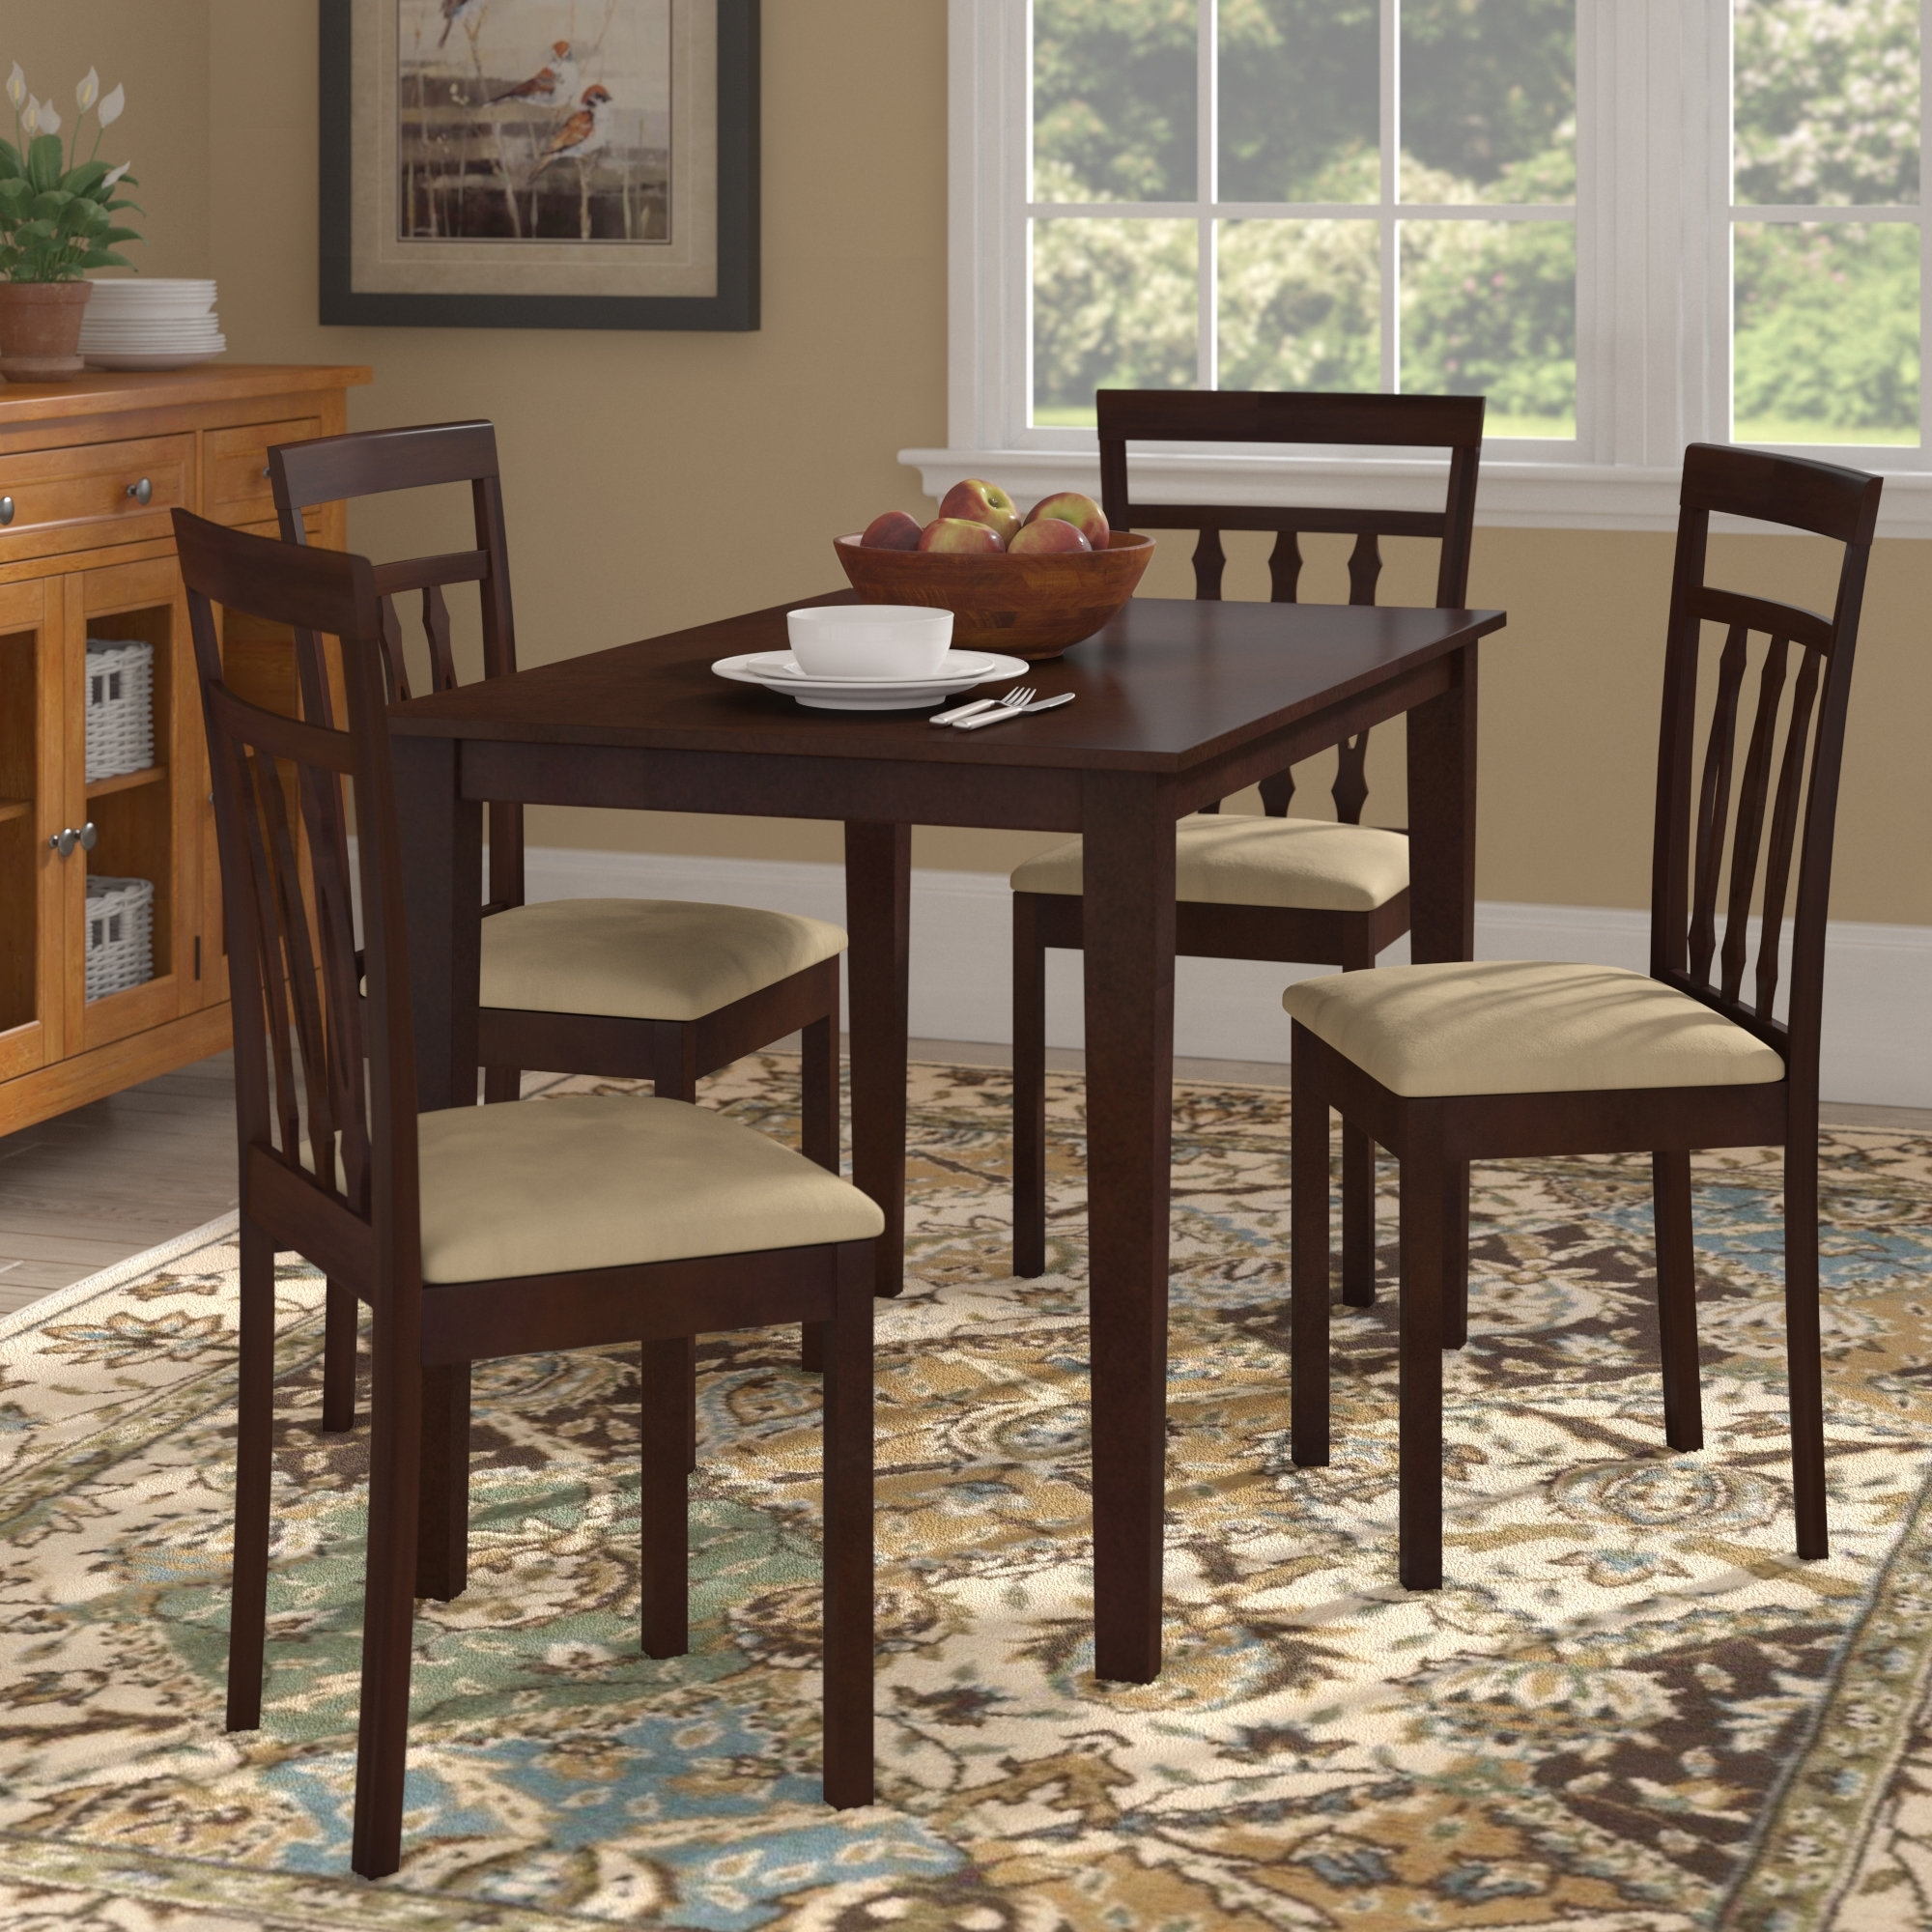 August Grove Vivien 5 Piece Dining Set & Reviews | Wayfair With Regard To 2017 Hyland 5 Piece Counter Sets With Bench (View 12 of 20)